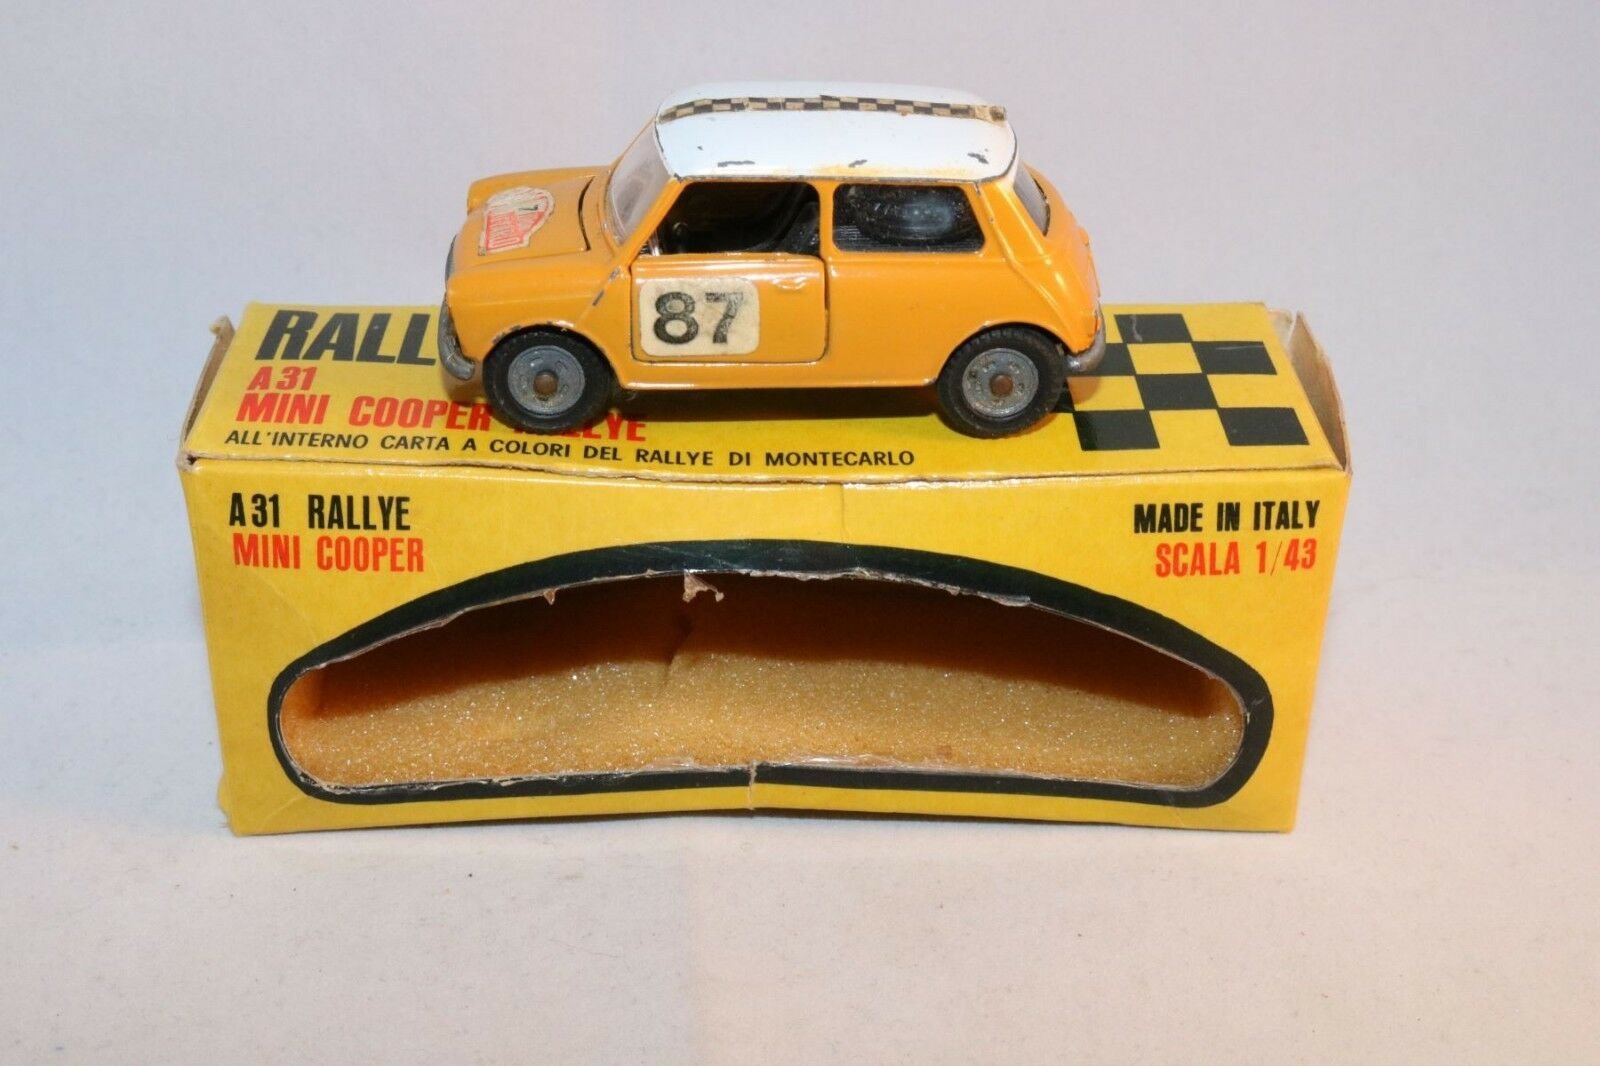 Mebetoys A-31 A 31 A31 Mini Cooper Rally in excellent plus condition